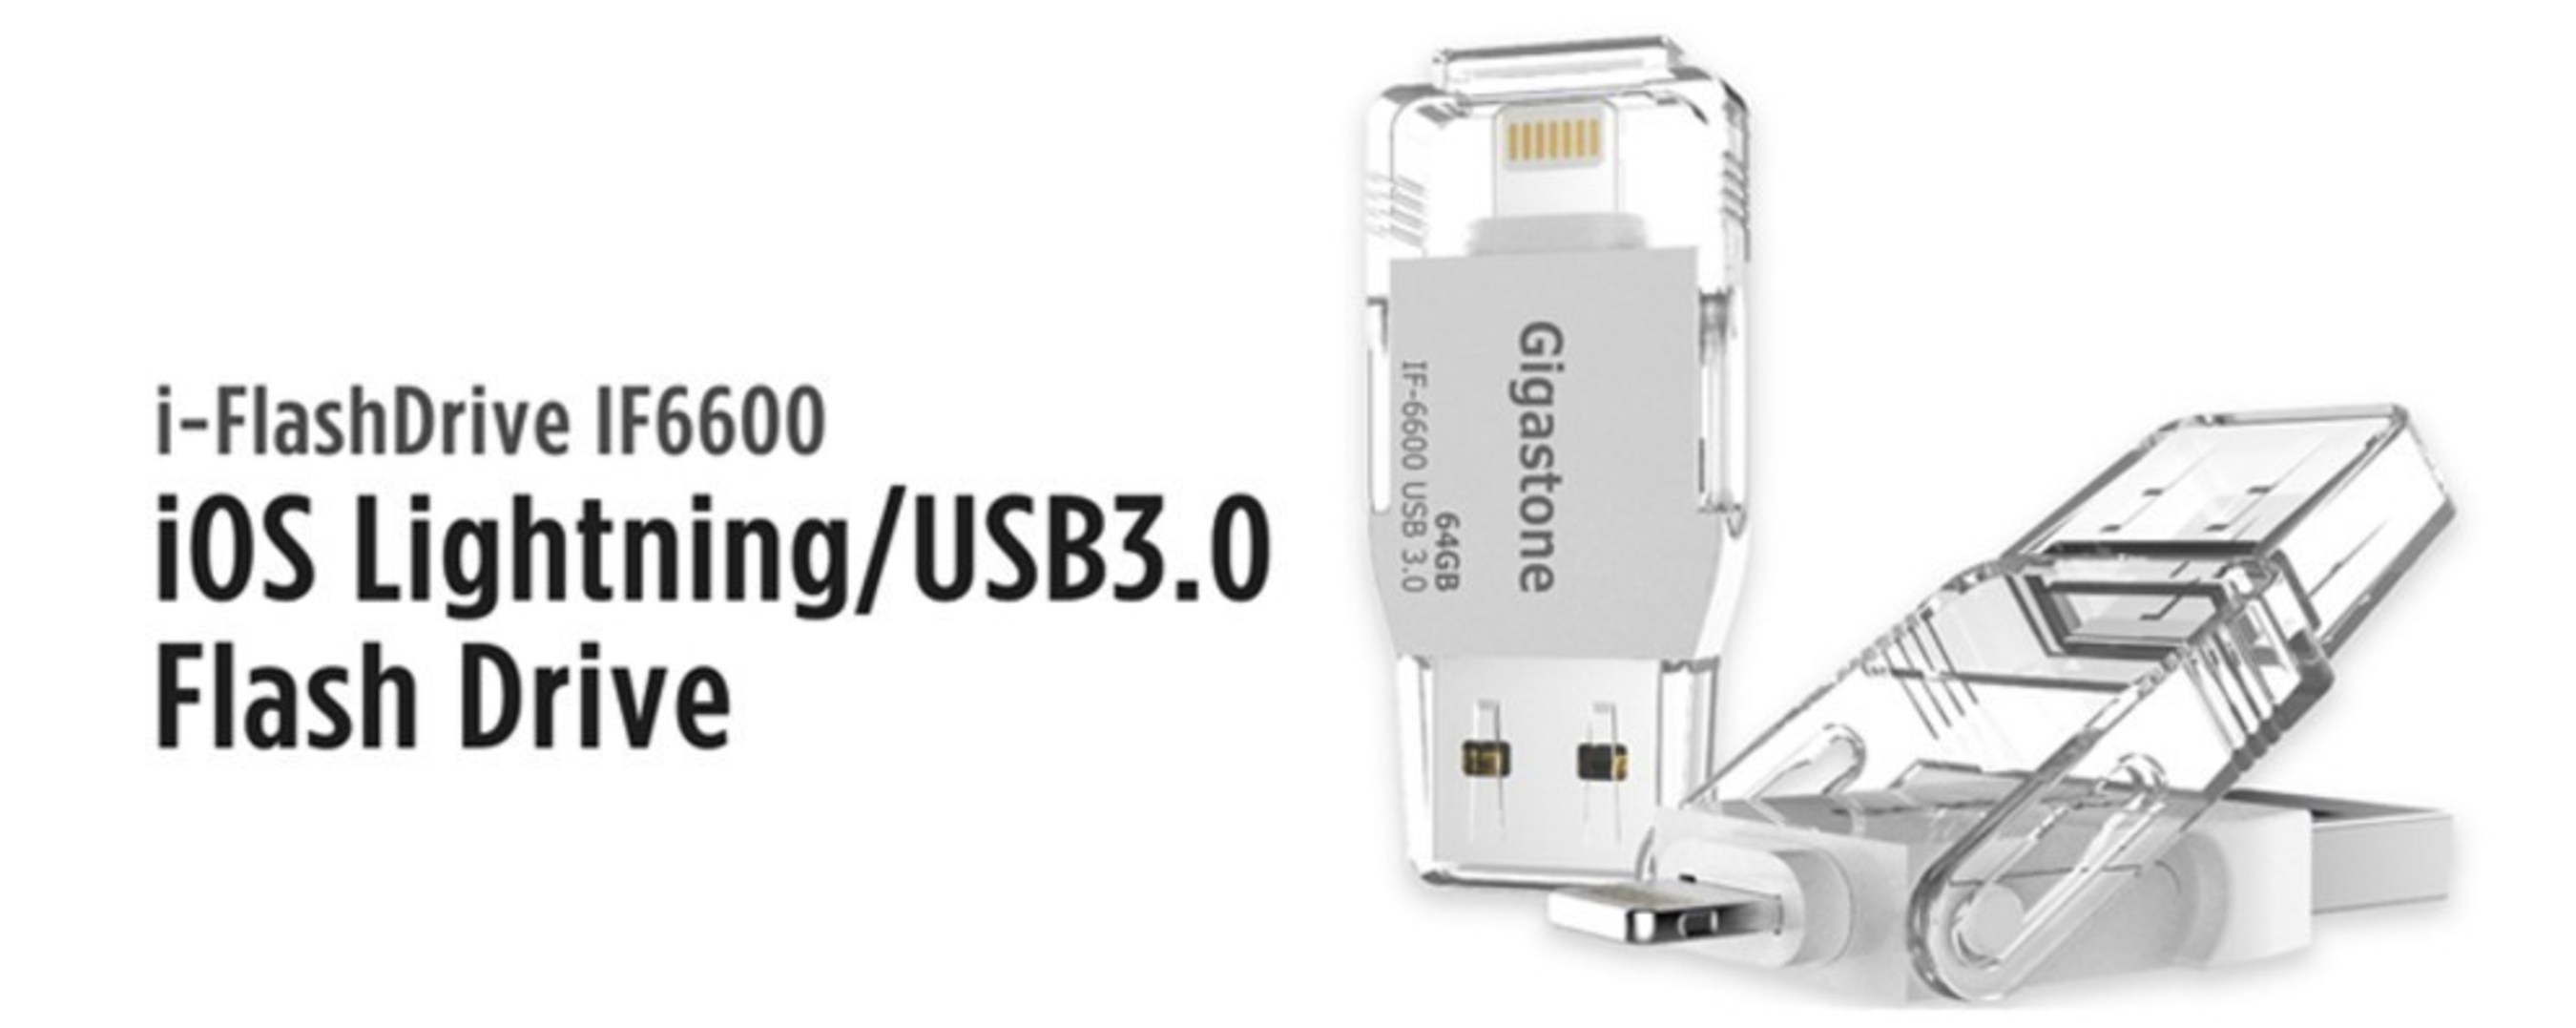 Gigastone iPhone Thumb Drives Become Standard Tool for iDevice Users